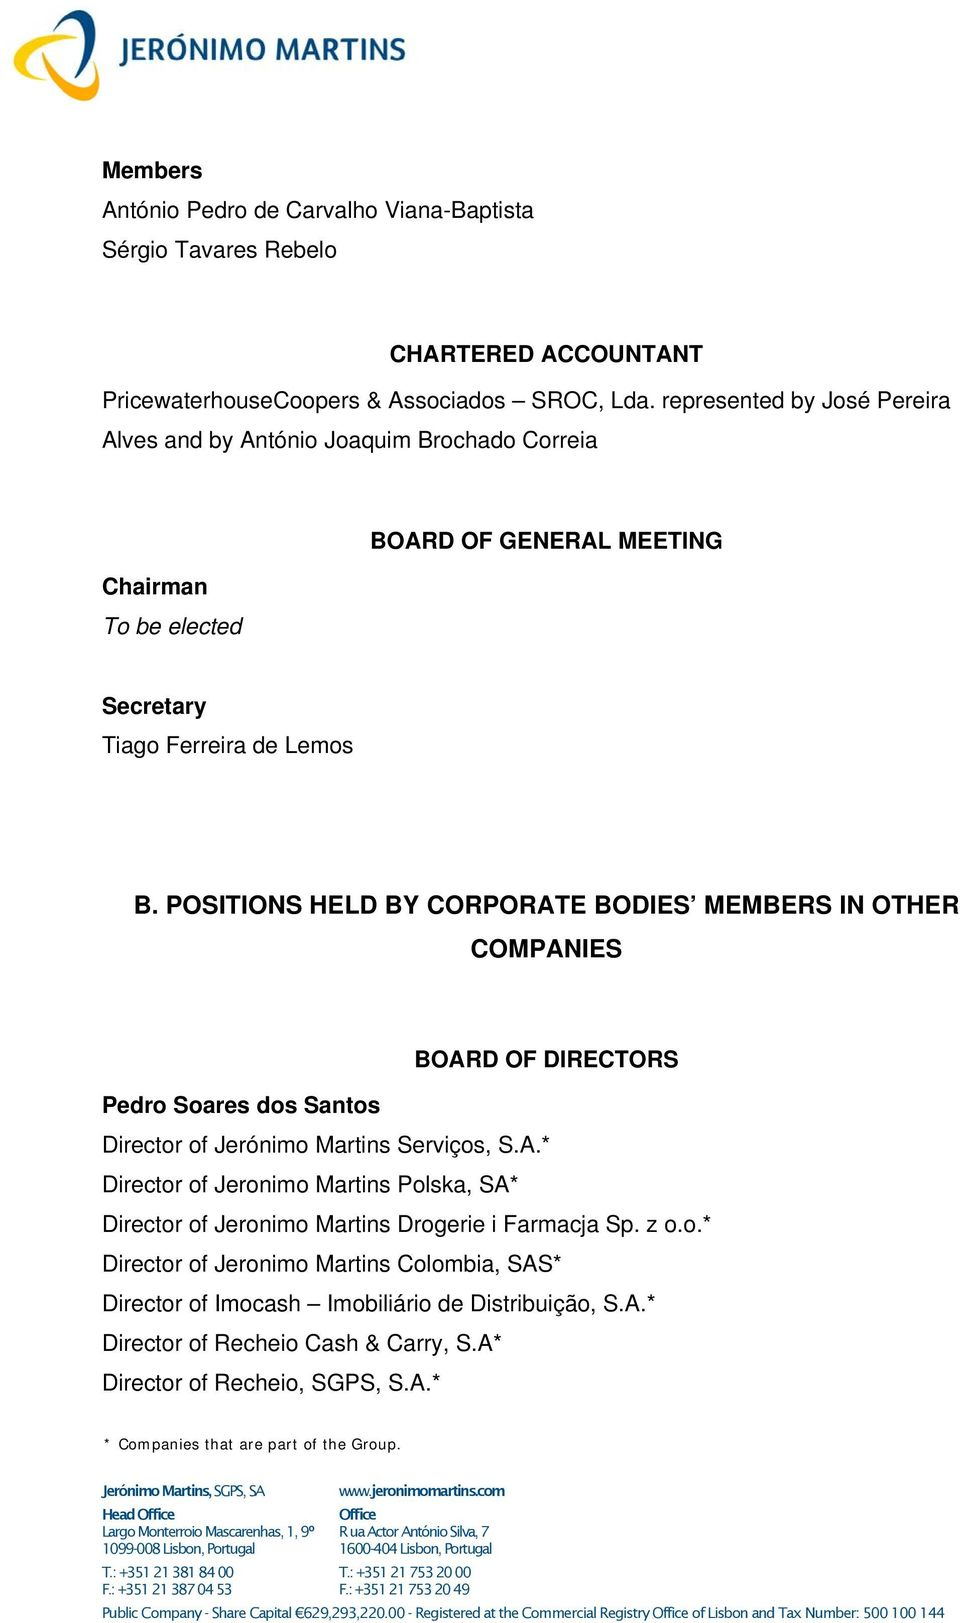 POSITIONS HELD BY CORPORATE BODIES MEMBERS IN OTHER COMPANIES BOARD OF DIRECTORS Pedro Soares dos Santos Director of Jerónimo Martins Serviços, S.A.* Director of Jeronimo Martins Polska, SA* Director of Jeronimo Martins Drogerie i Farmacja Sp.